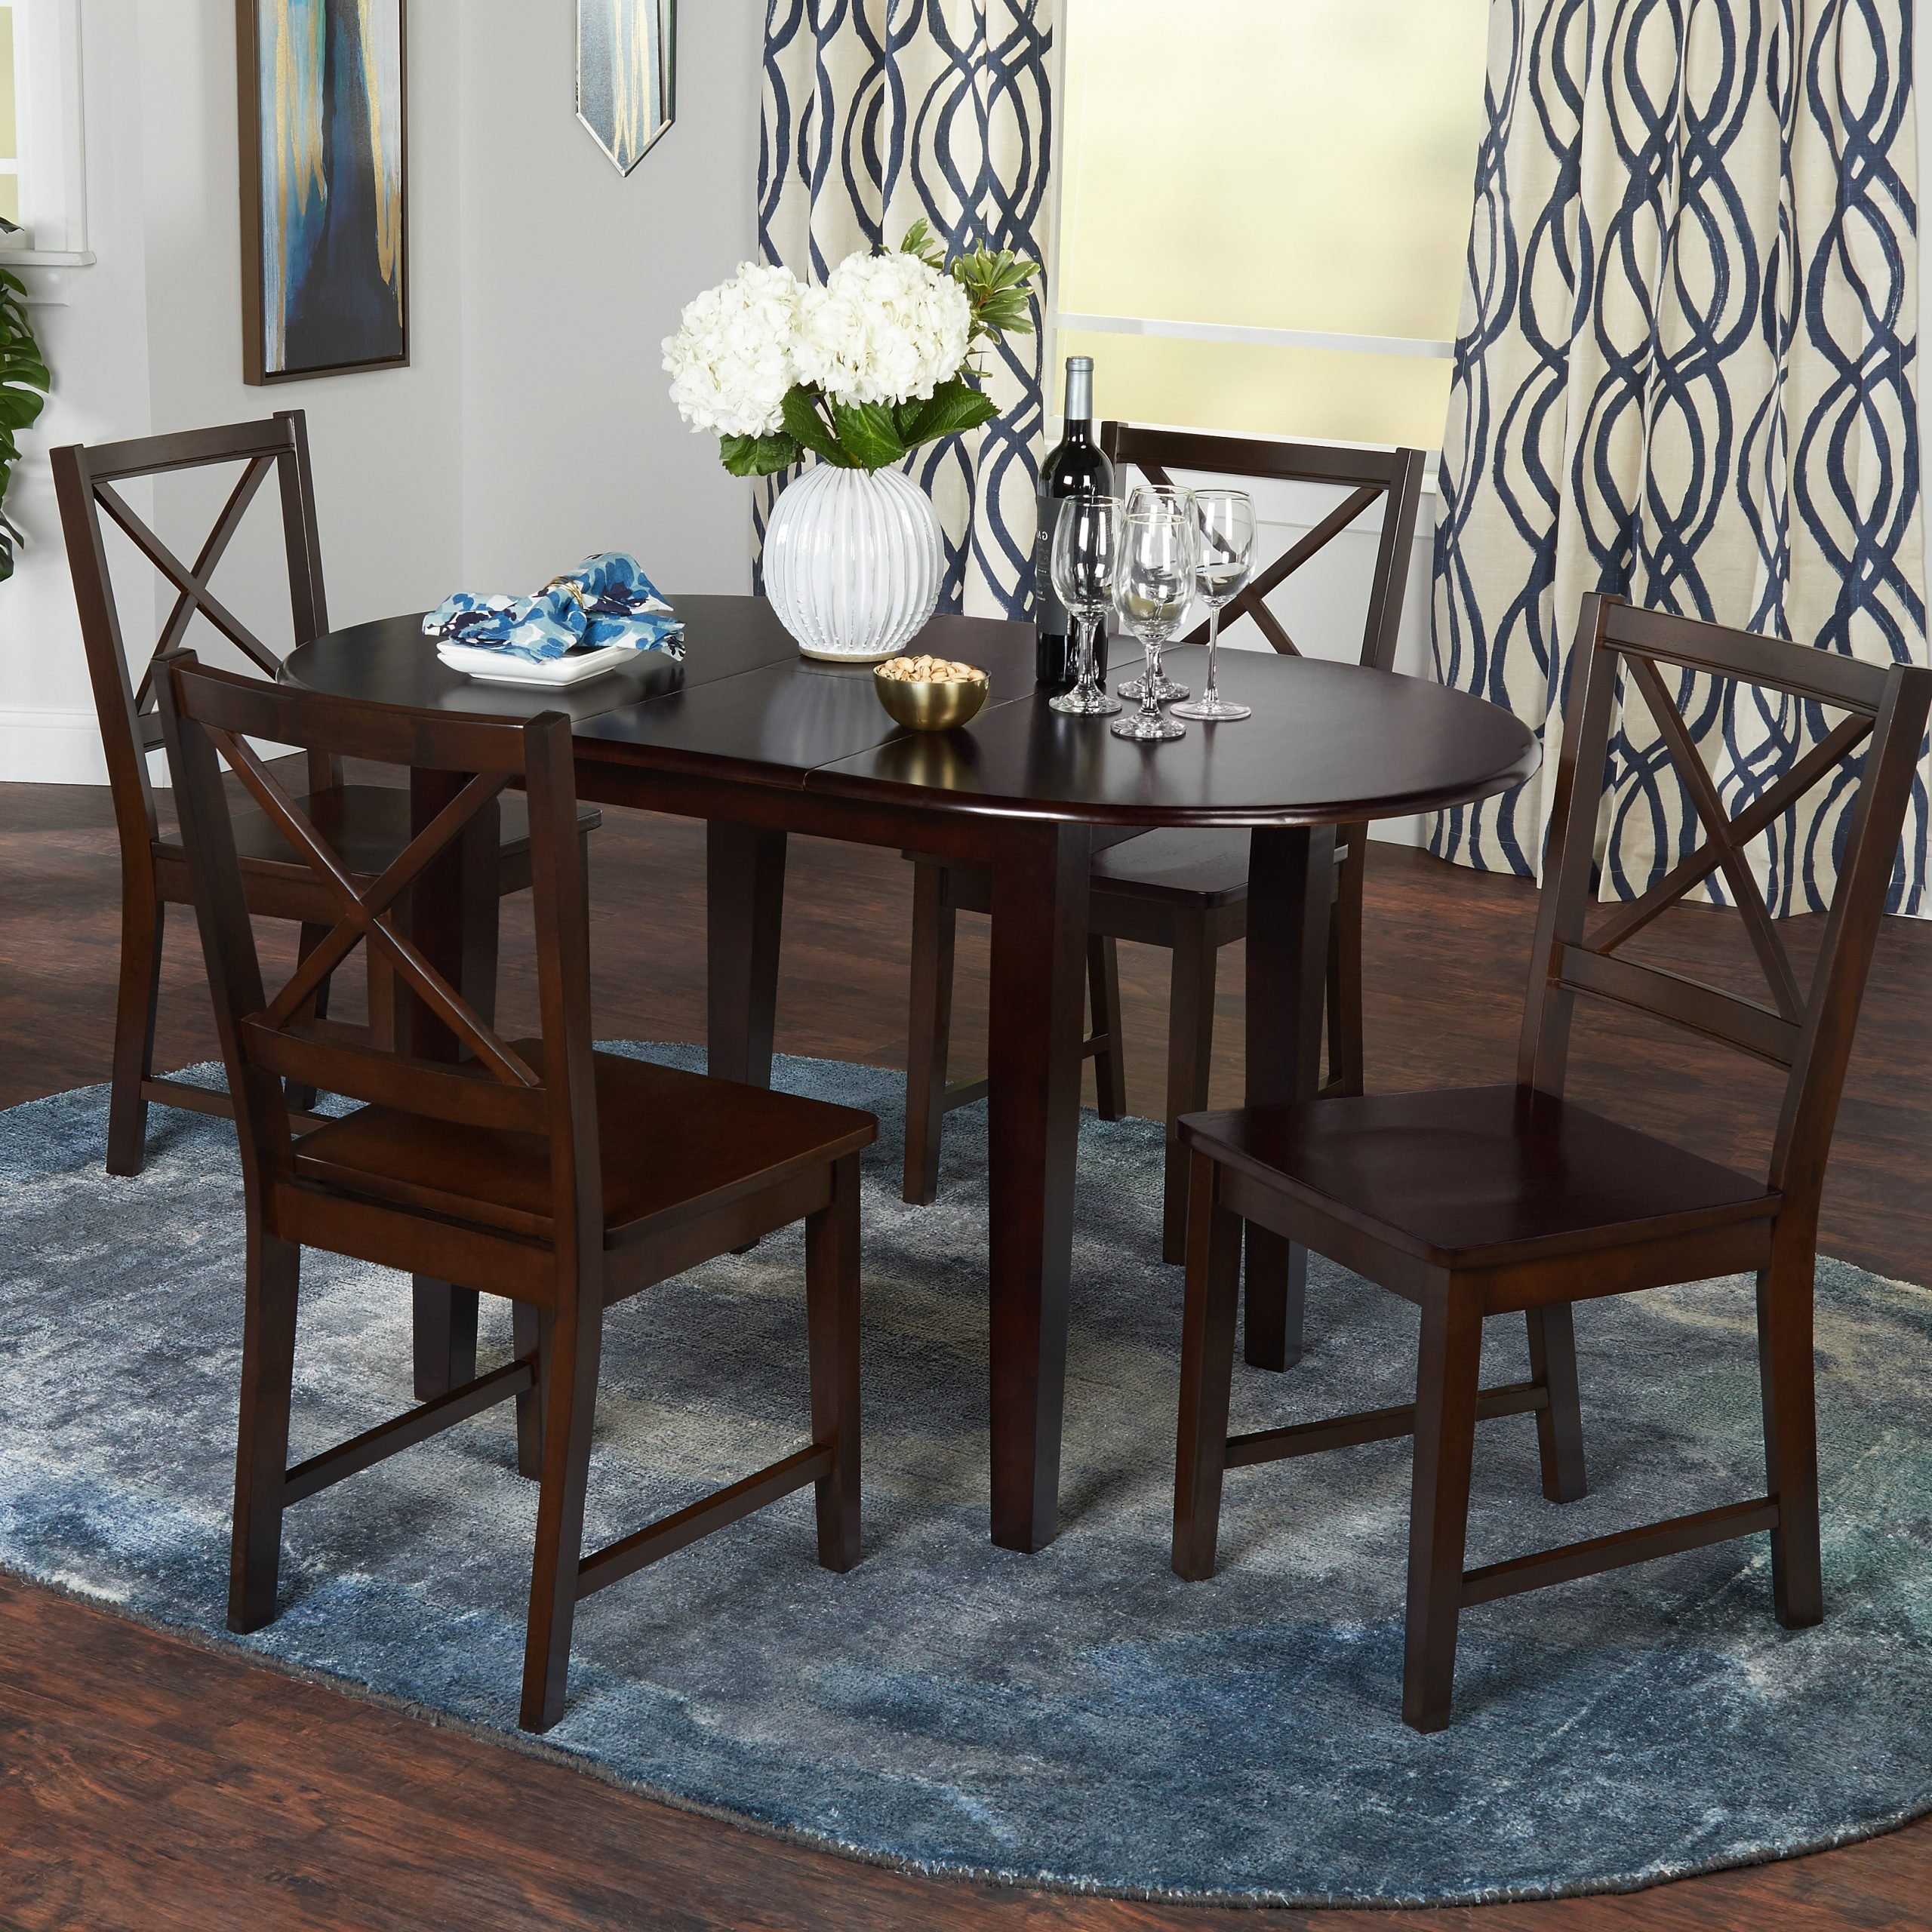 Alamo Transitional 4 Seating Double Drop Leaf Round Casual Dining Tables Throughout Recent Tapas Butterfly Dining Table, Espresso – Walmart (View 26 of 26)